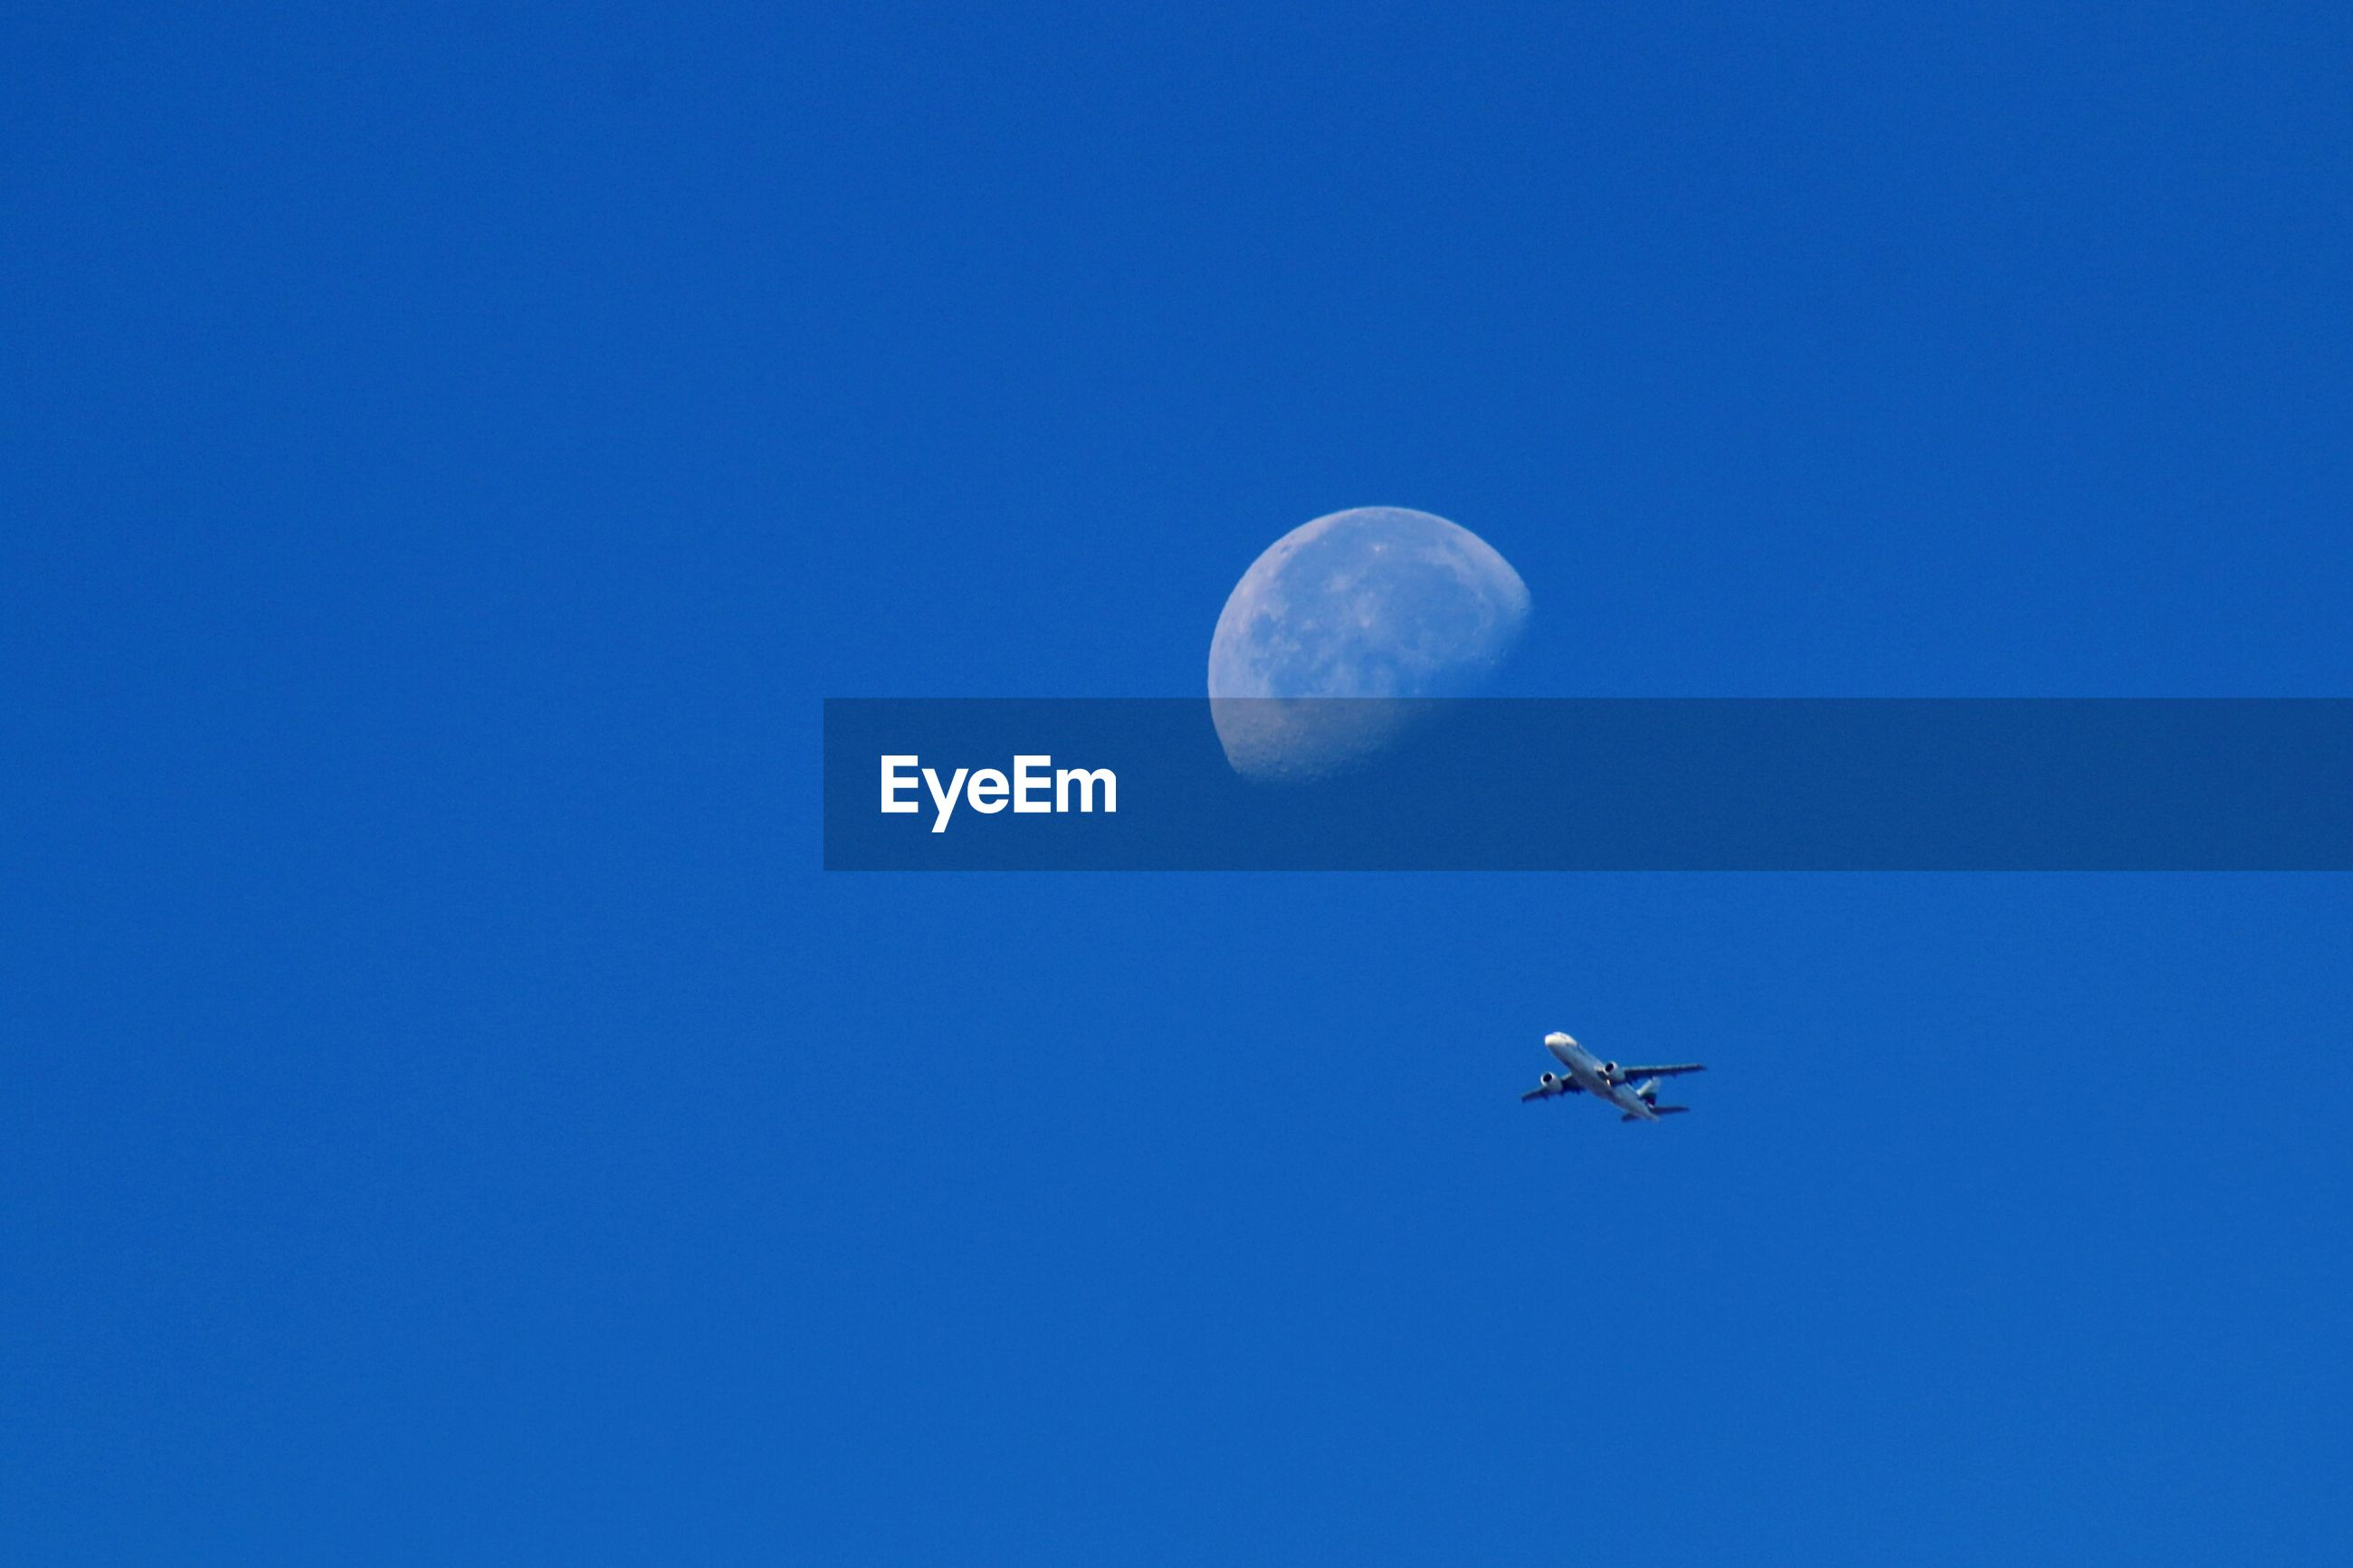 Low angle view of airplane flying with moon in background